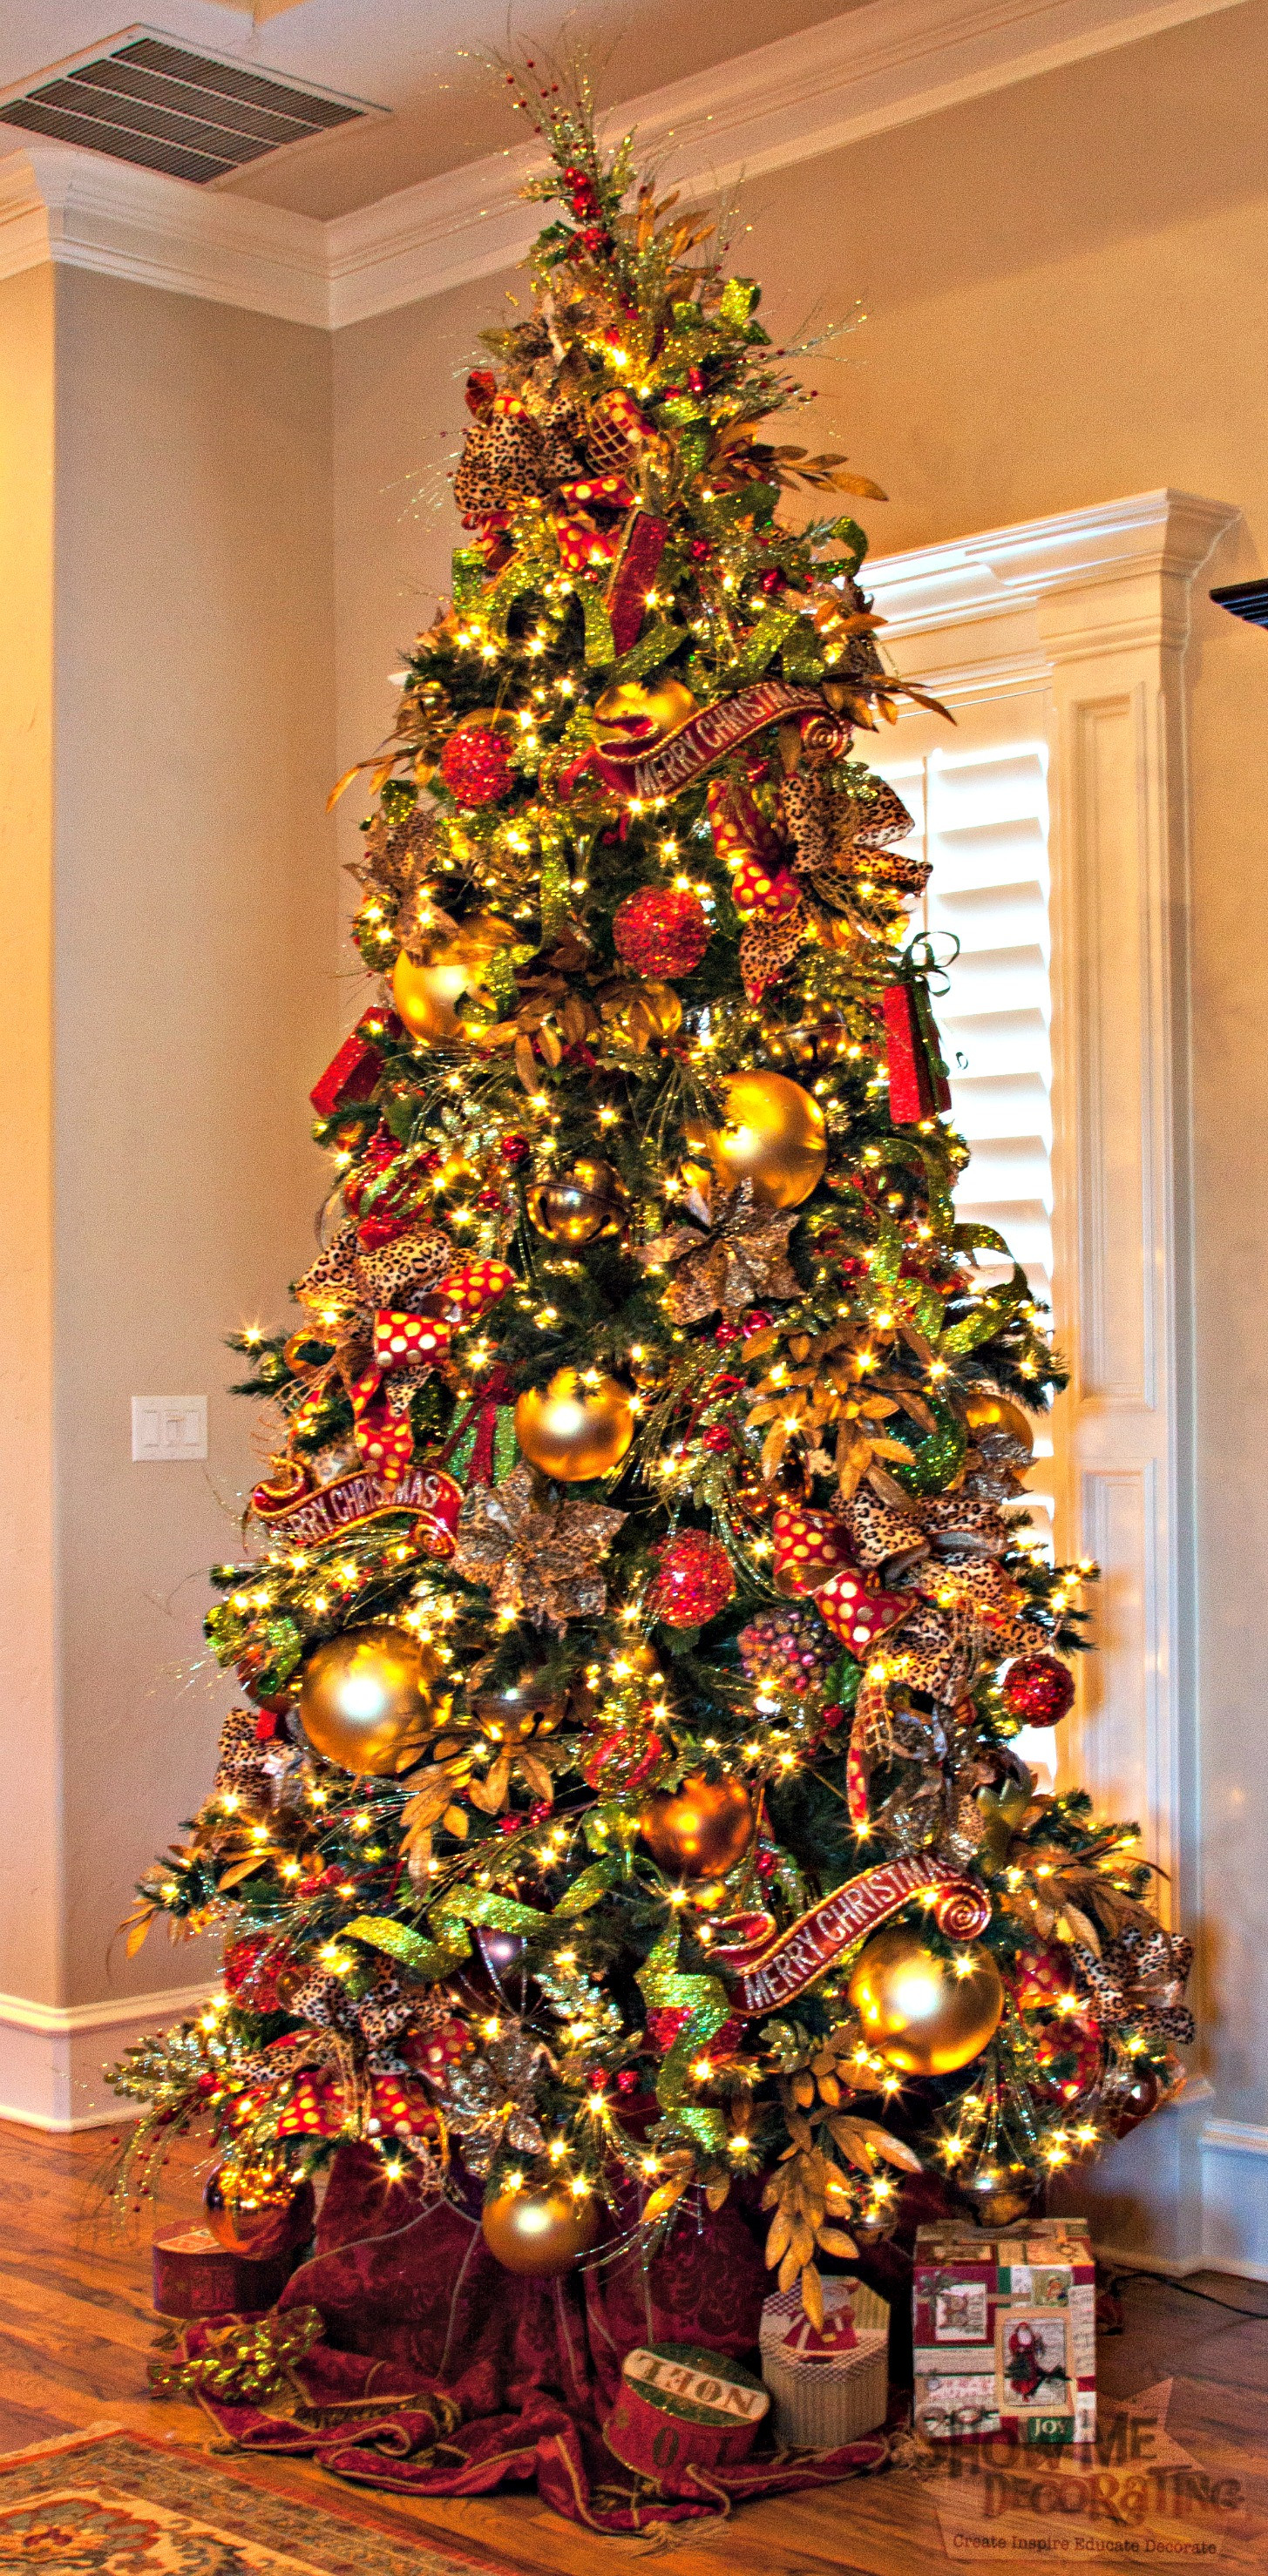 Best Of Christmas Tree theme Christmas Tree and Decorations Of Delightful 50 Pictures Christmas Tree and Decorations